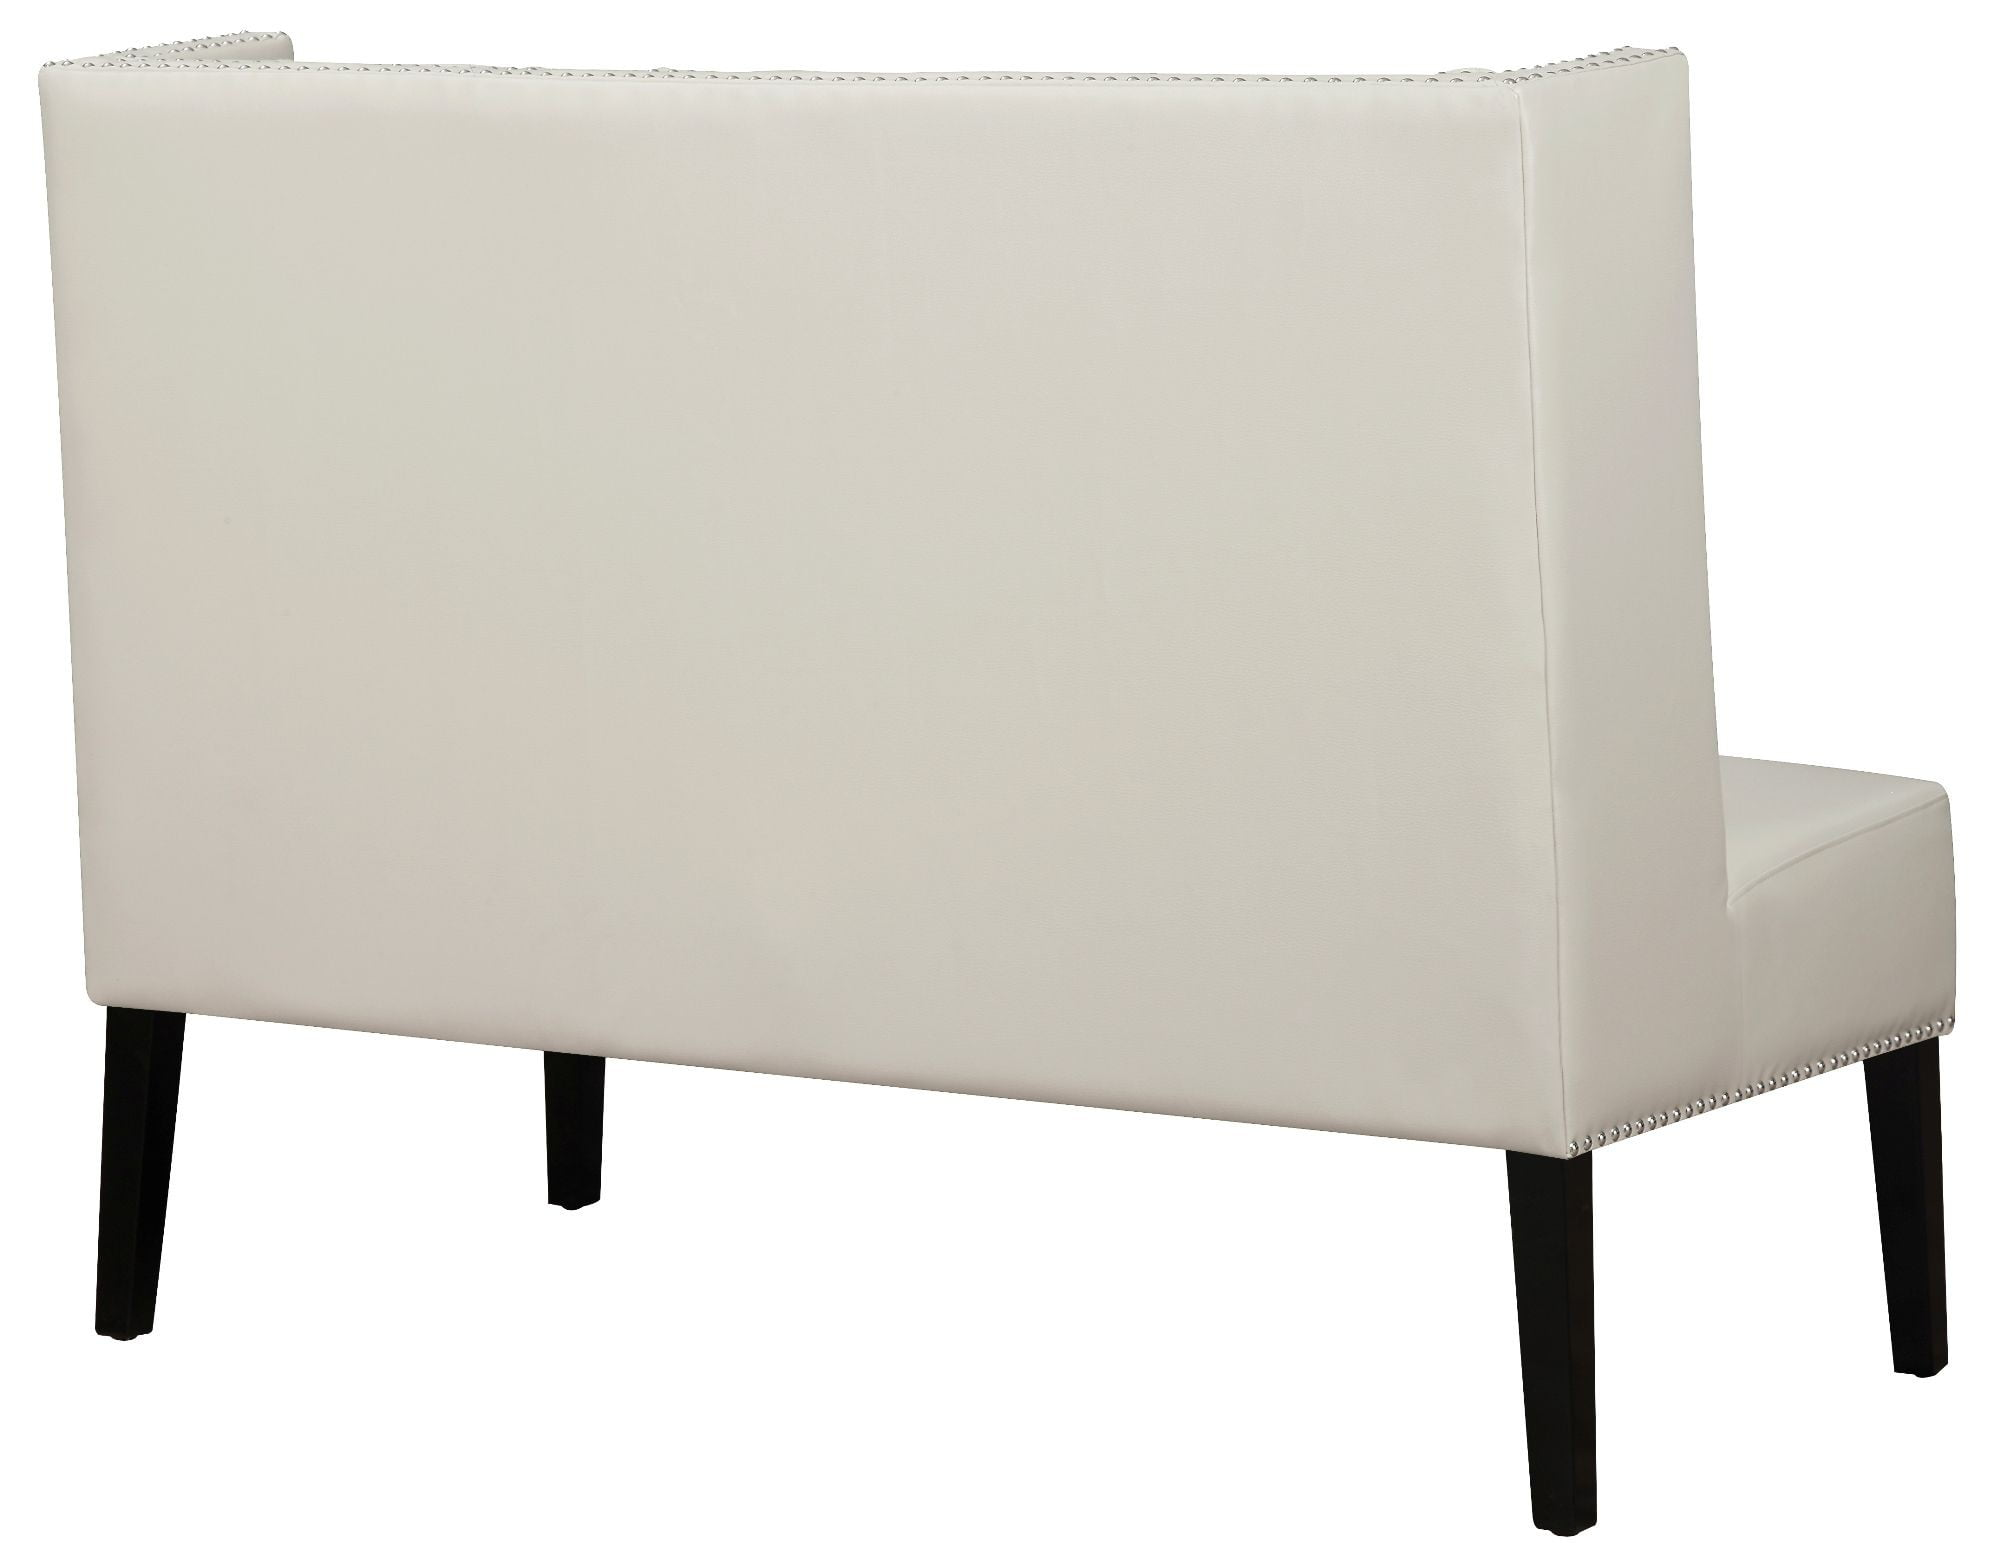 Halifax Cream Leather Banquette Bench from TOV Cream